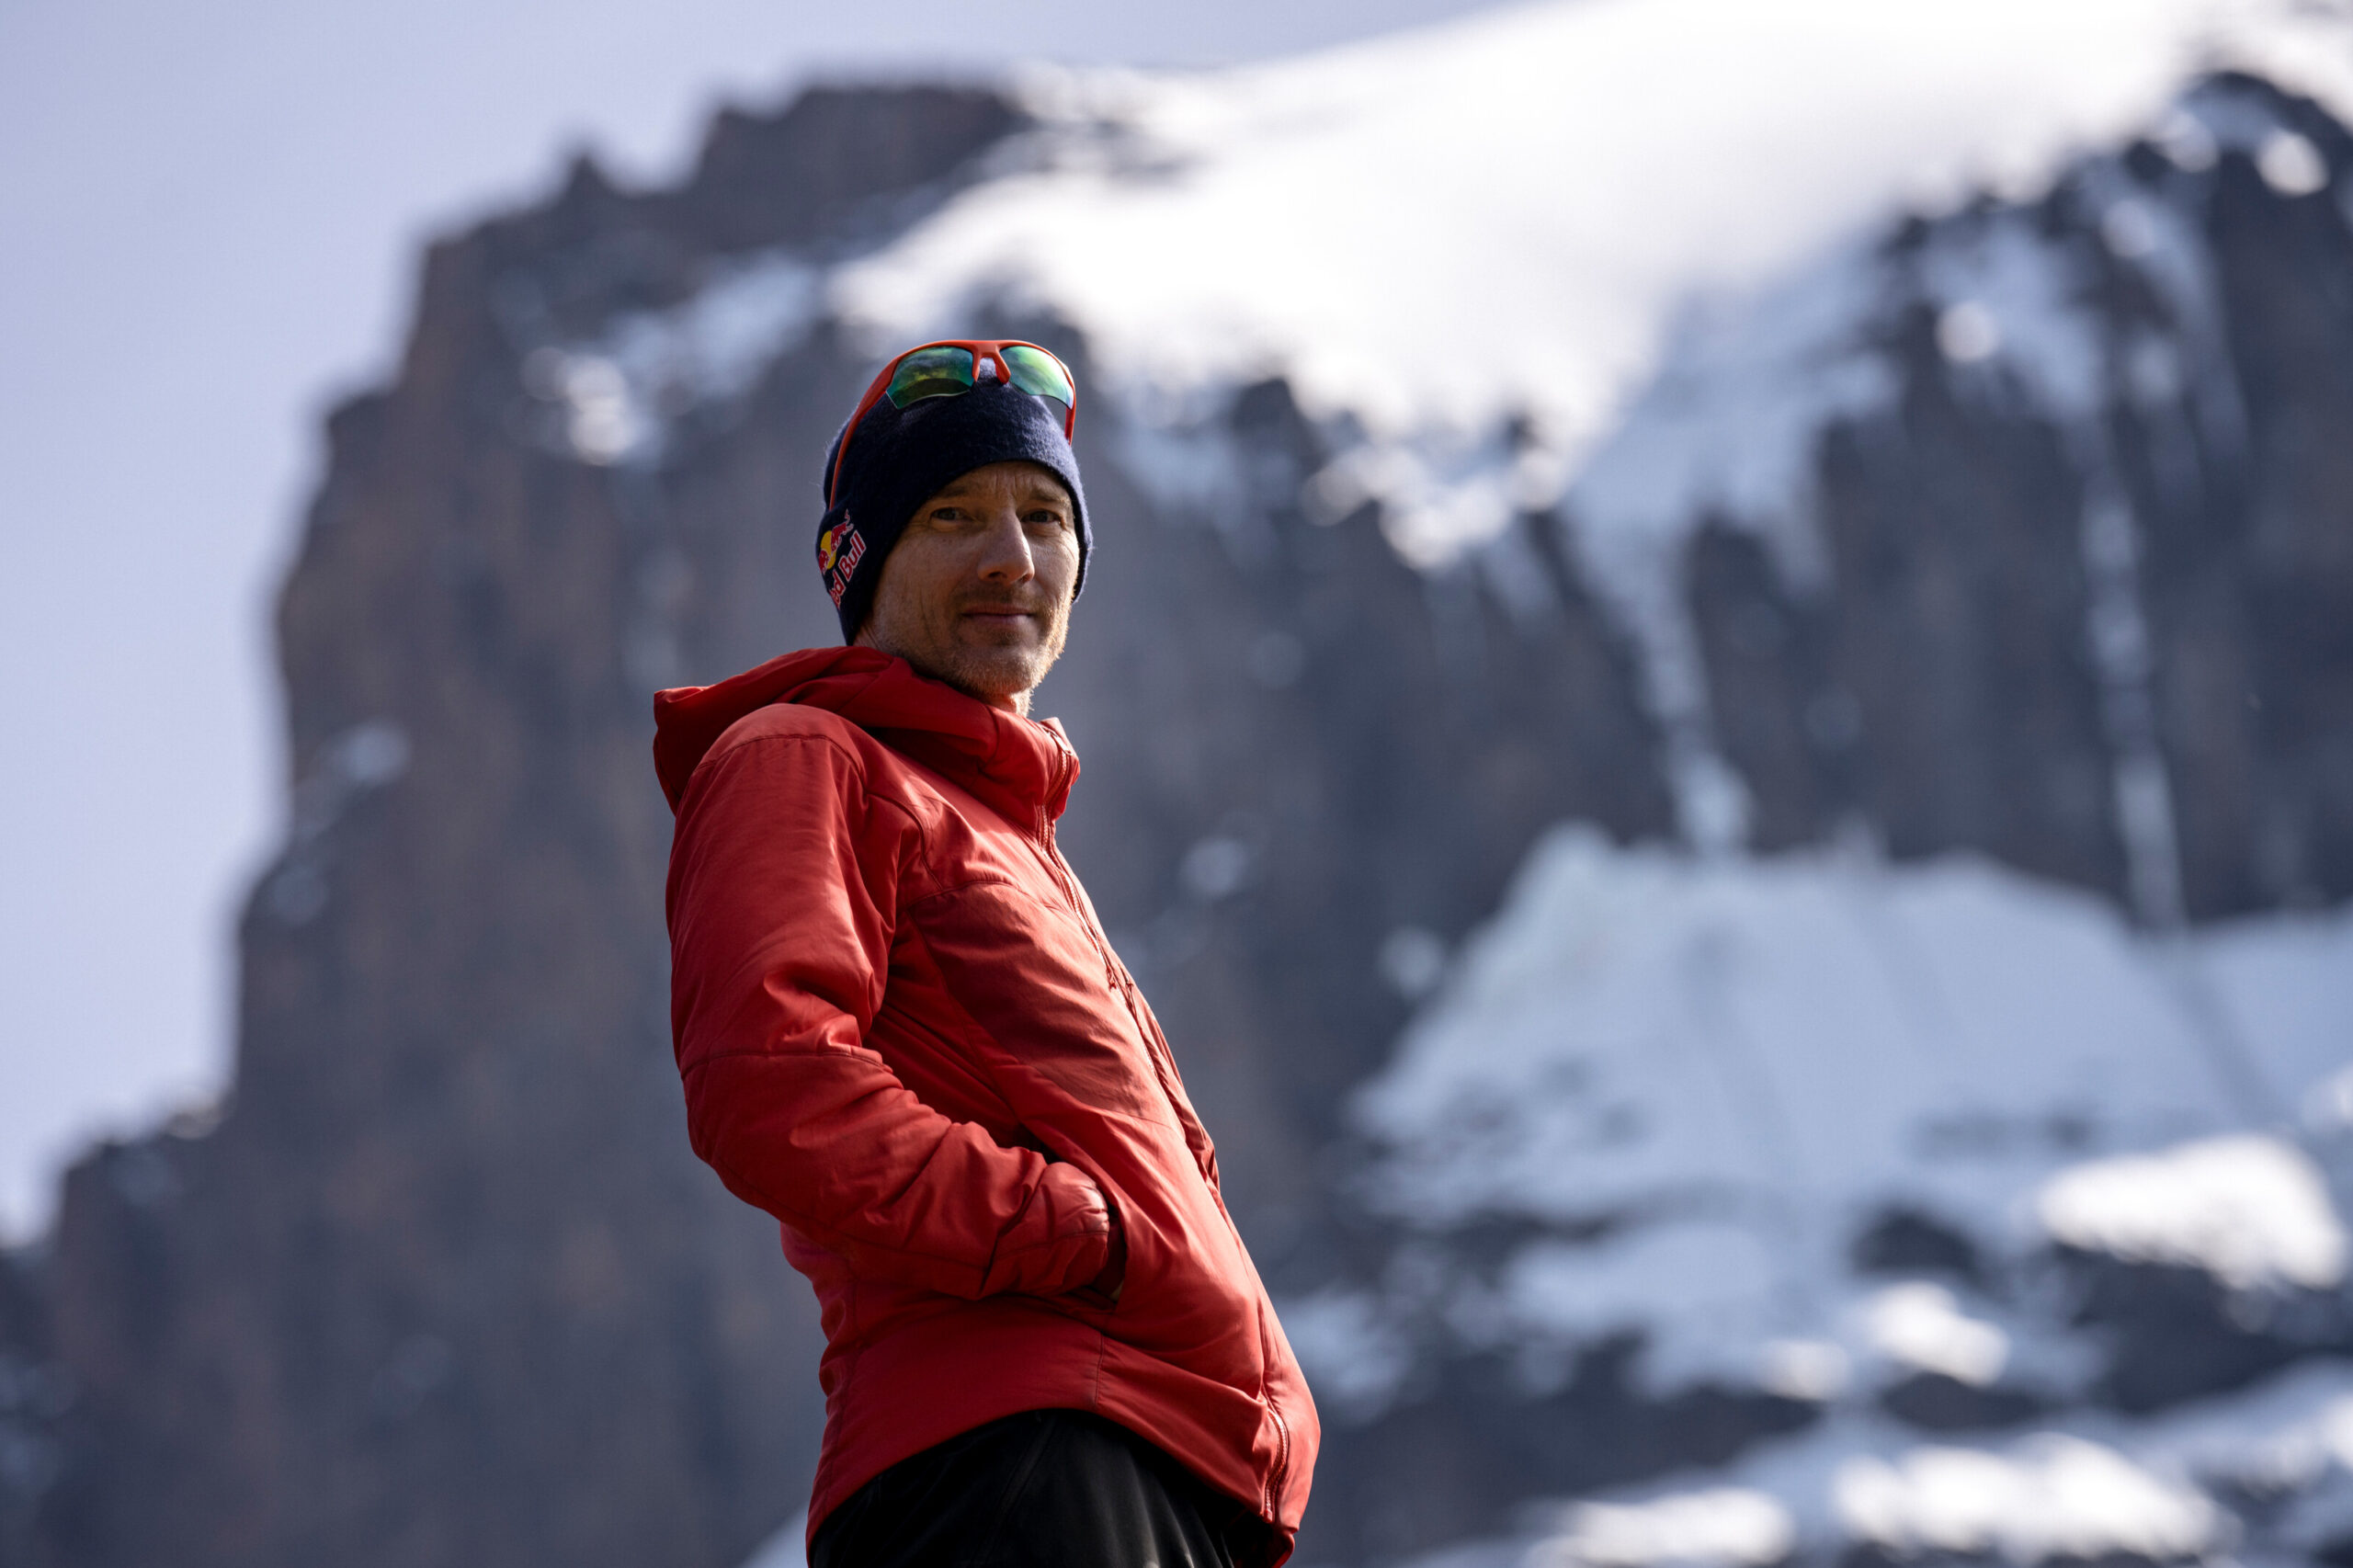 Will Gadd poses for a portrait on Mt Kilimanjaro on 20 February, 2020 in Tanzania, Africa. // Christian Pondella/Red Bull Content Pool